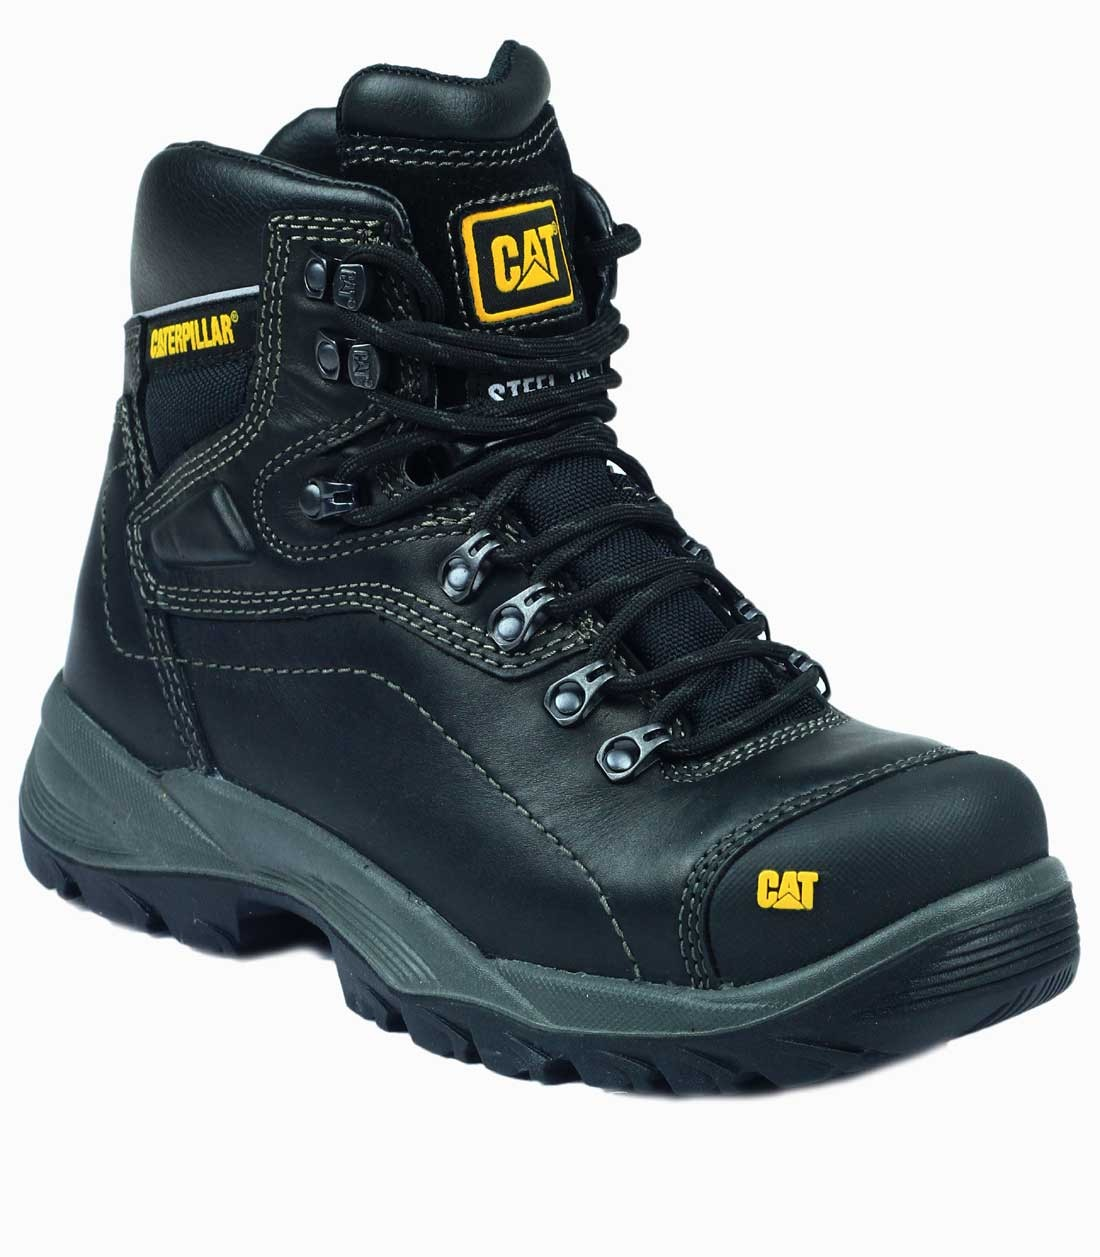 Caterpillar Diagnostic Black Safety Boots - Charnwood ...